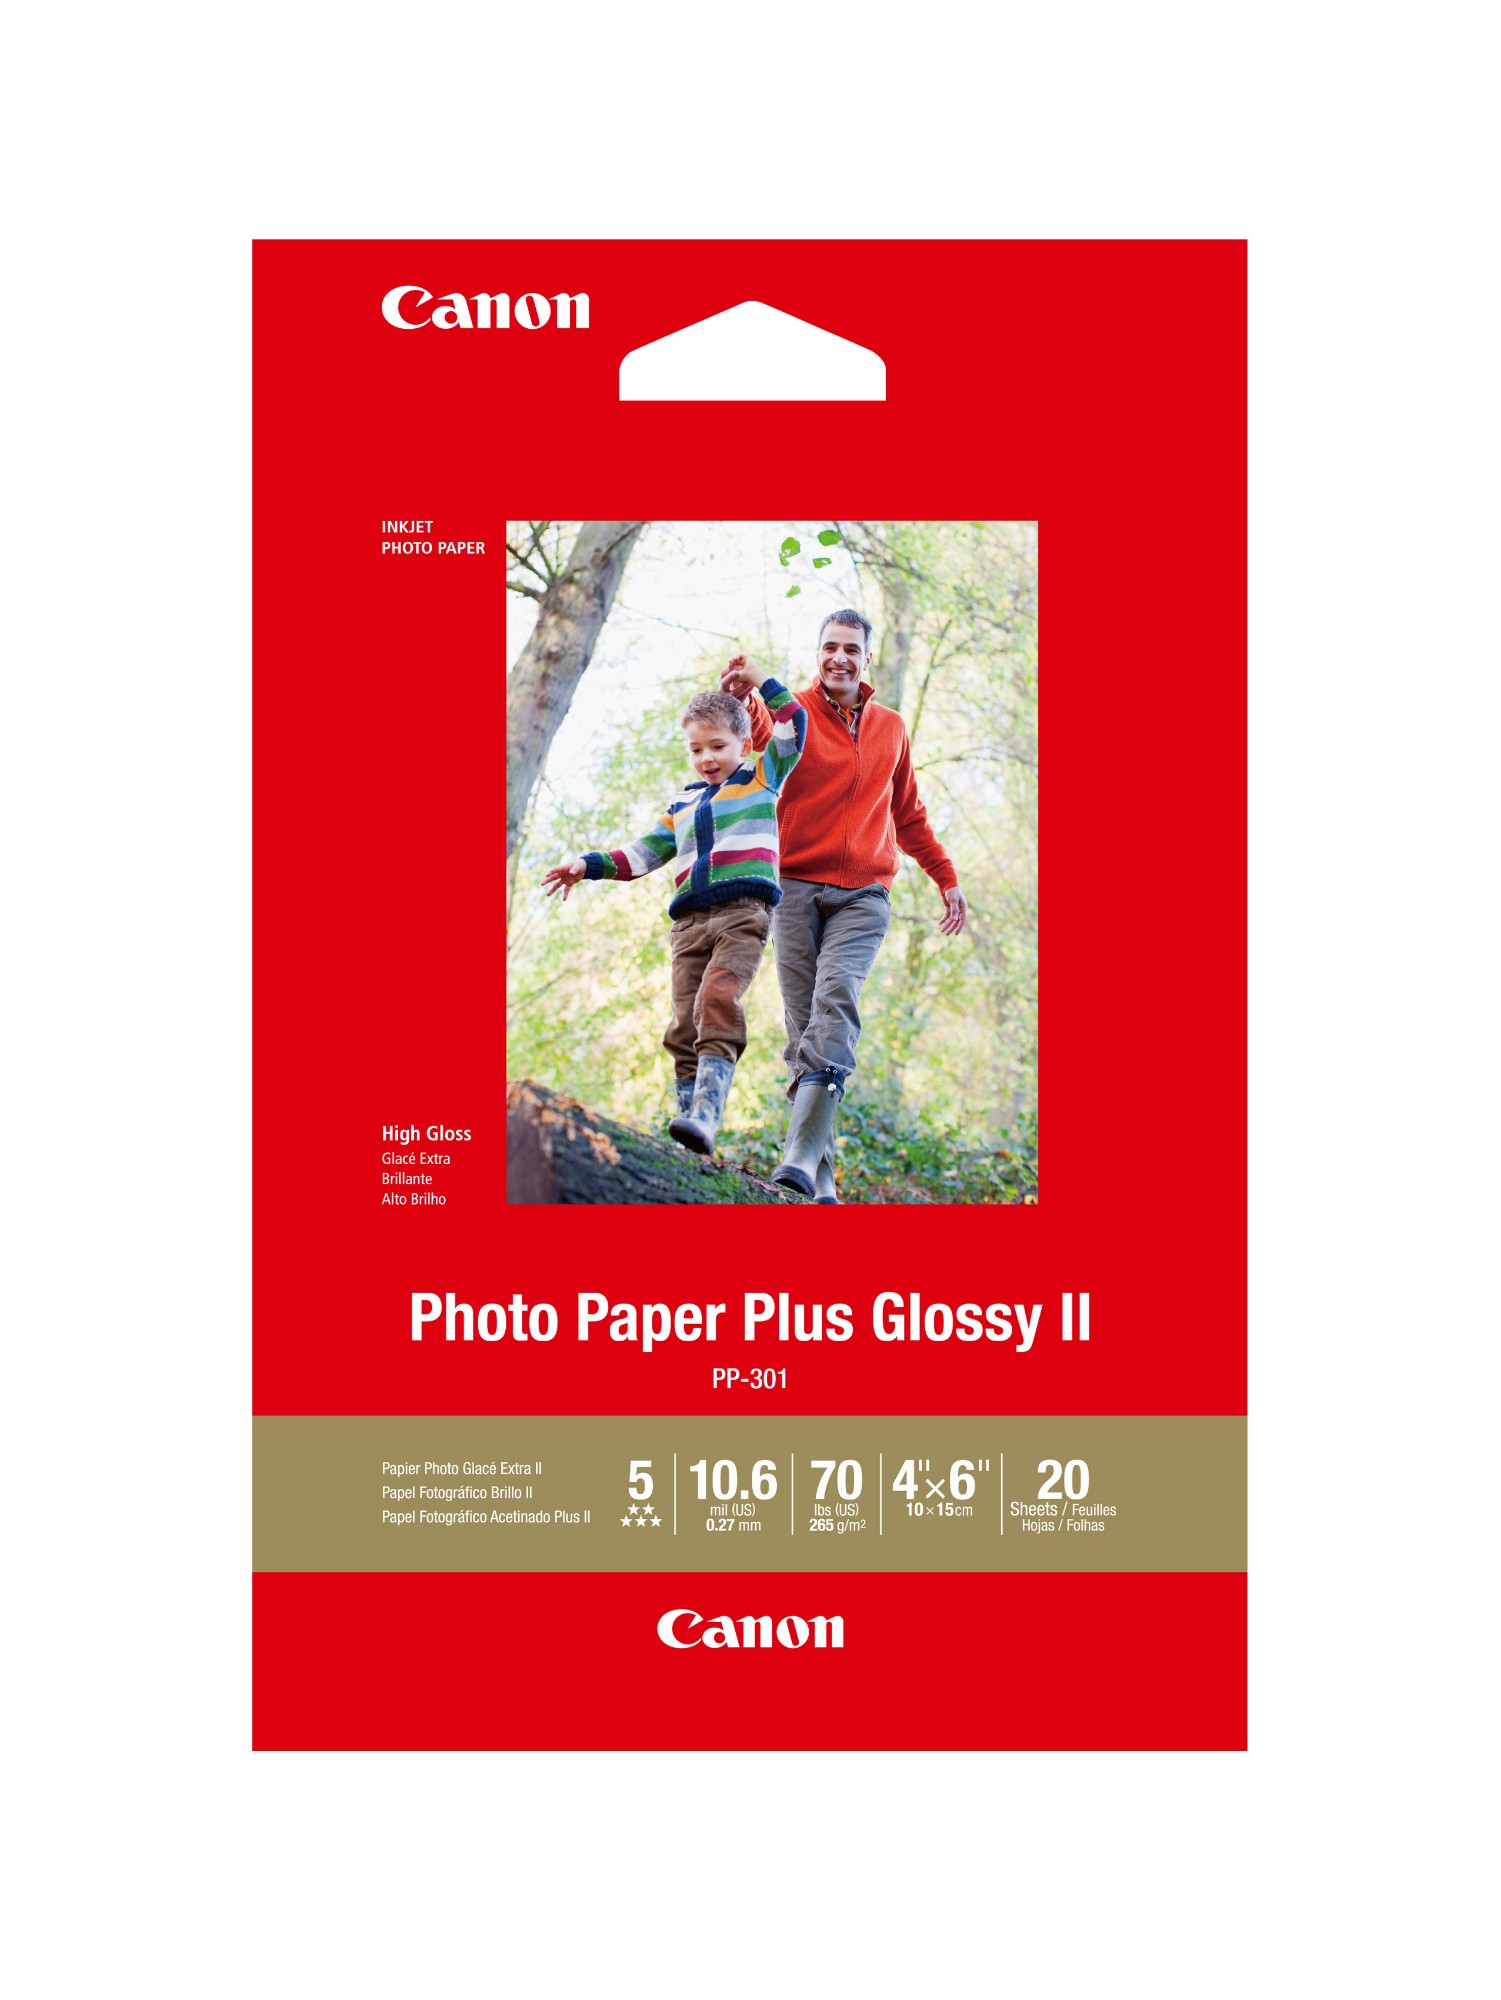 Canon PP3014X6-20, 20 Sheets, 260 gsm Photo Paper Plus Glossy II